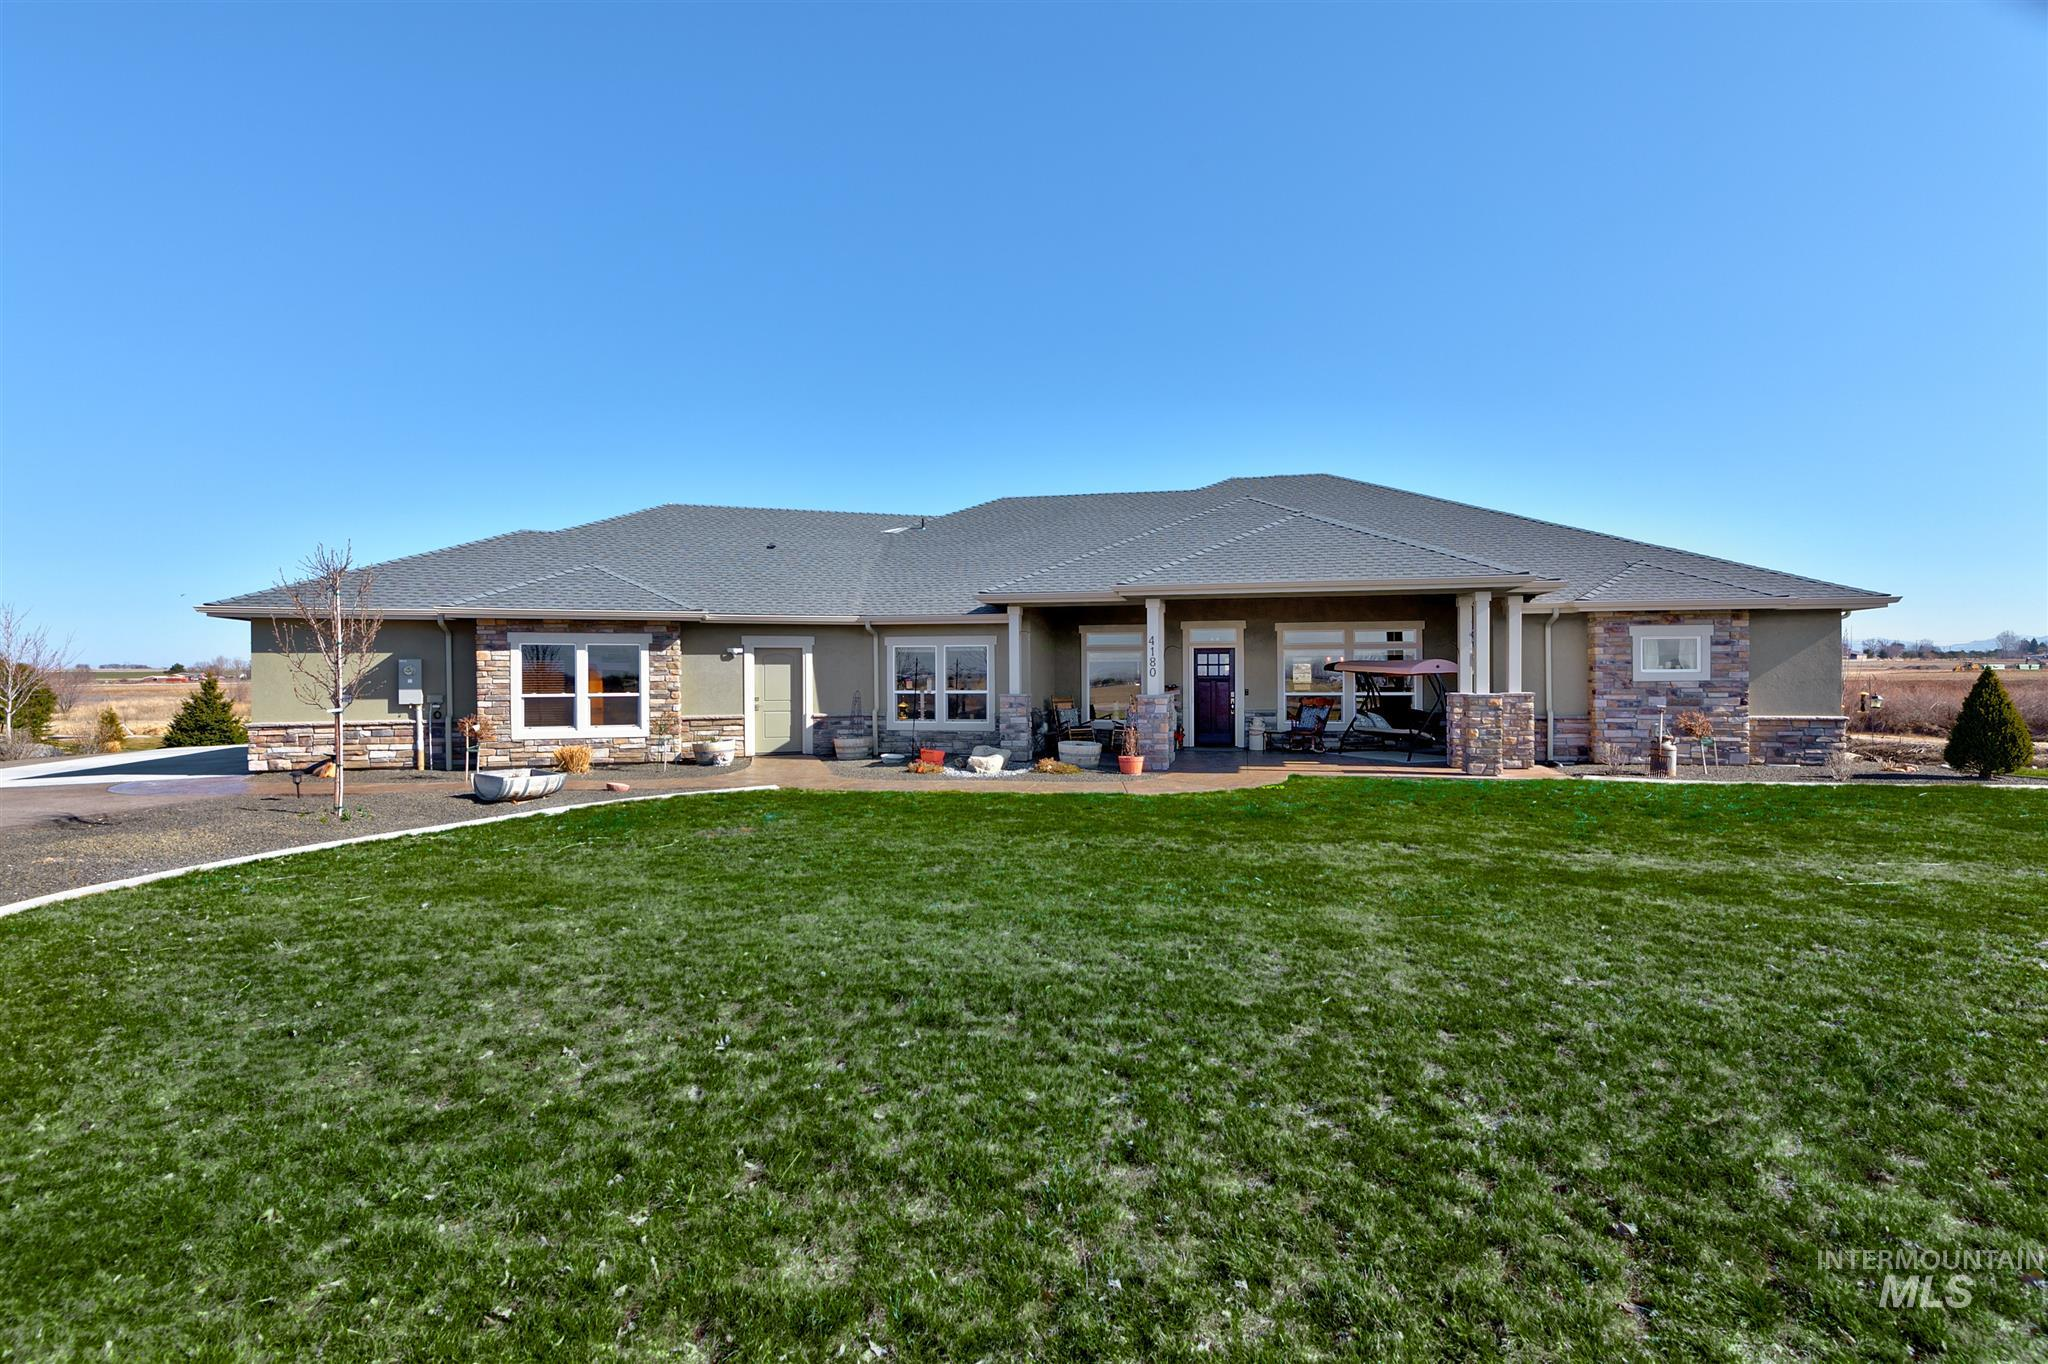 This is a beautiful 4205 sq ft. country home on 1.85 acres with a view of owhee mountains and bogus basin.  house was built in 2020 on a private lane. house shares a pond and has a creek that runs through the property, has a large master suite, theater room, 2 kitchens, and lots of parking. btva